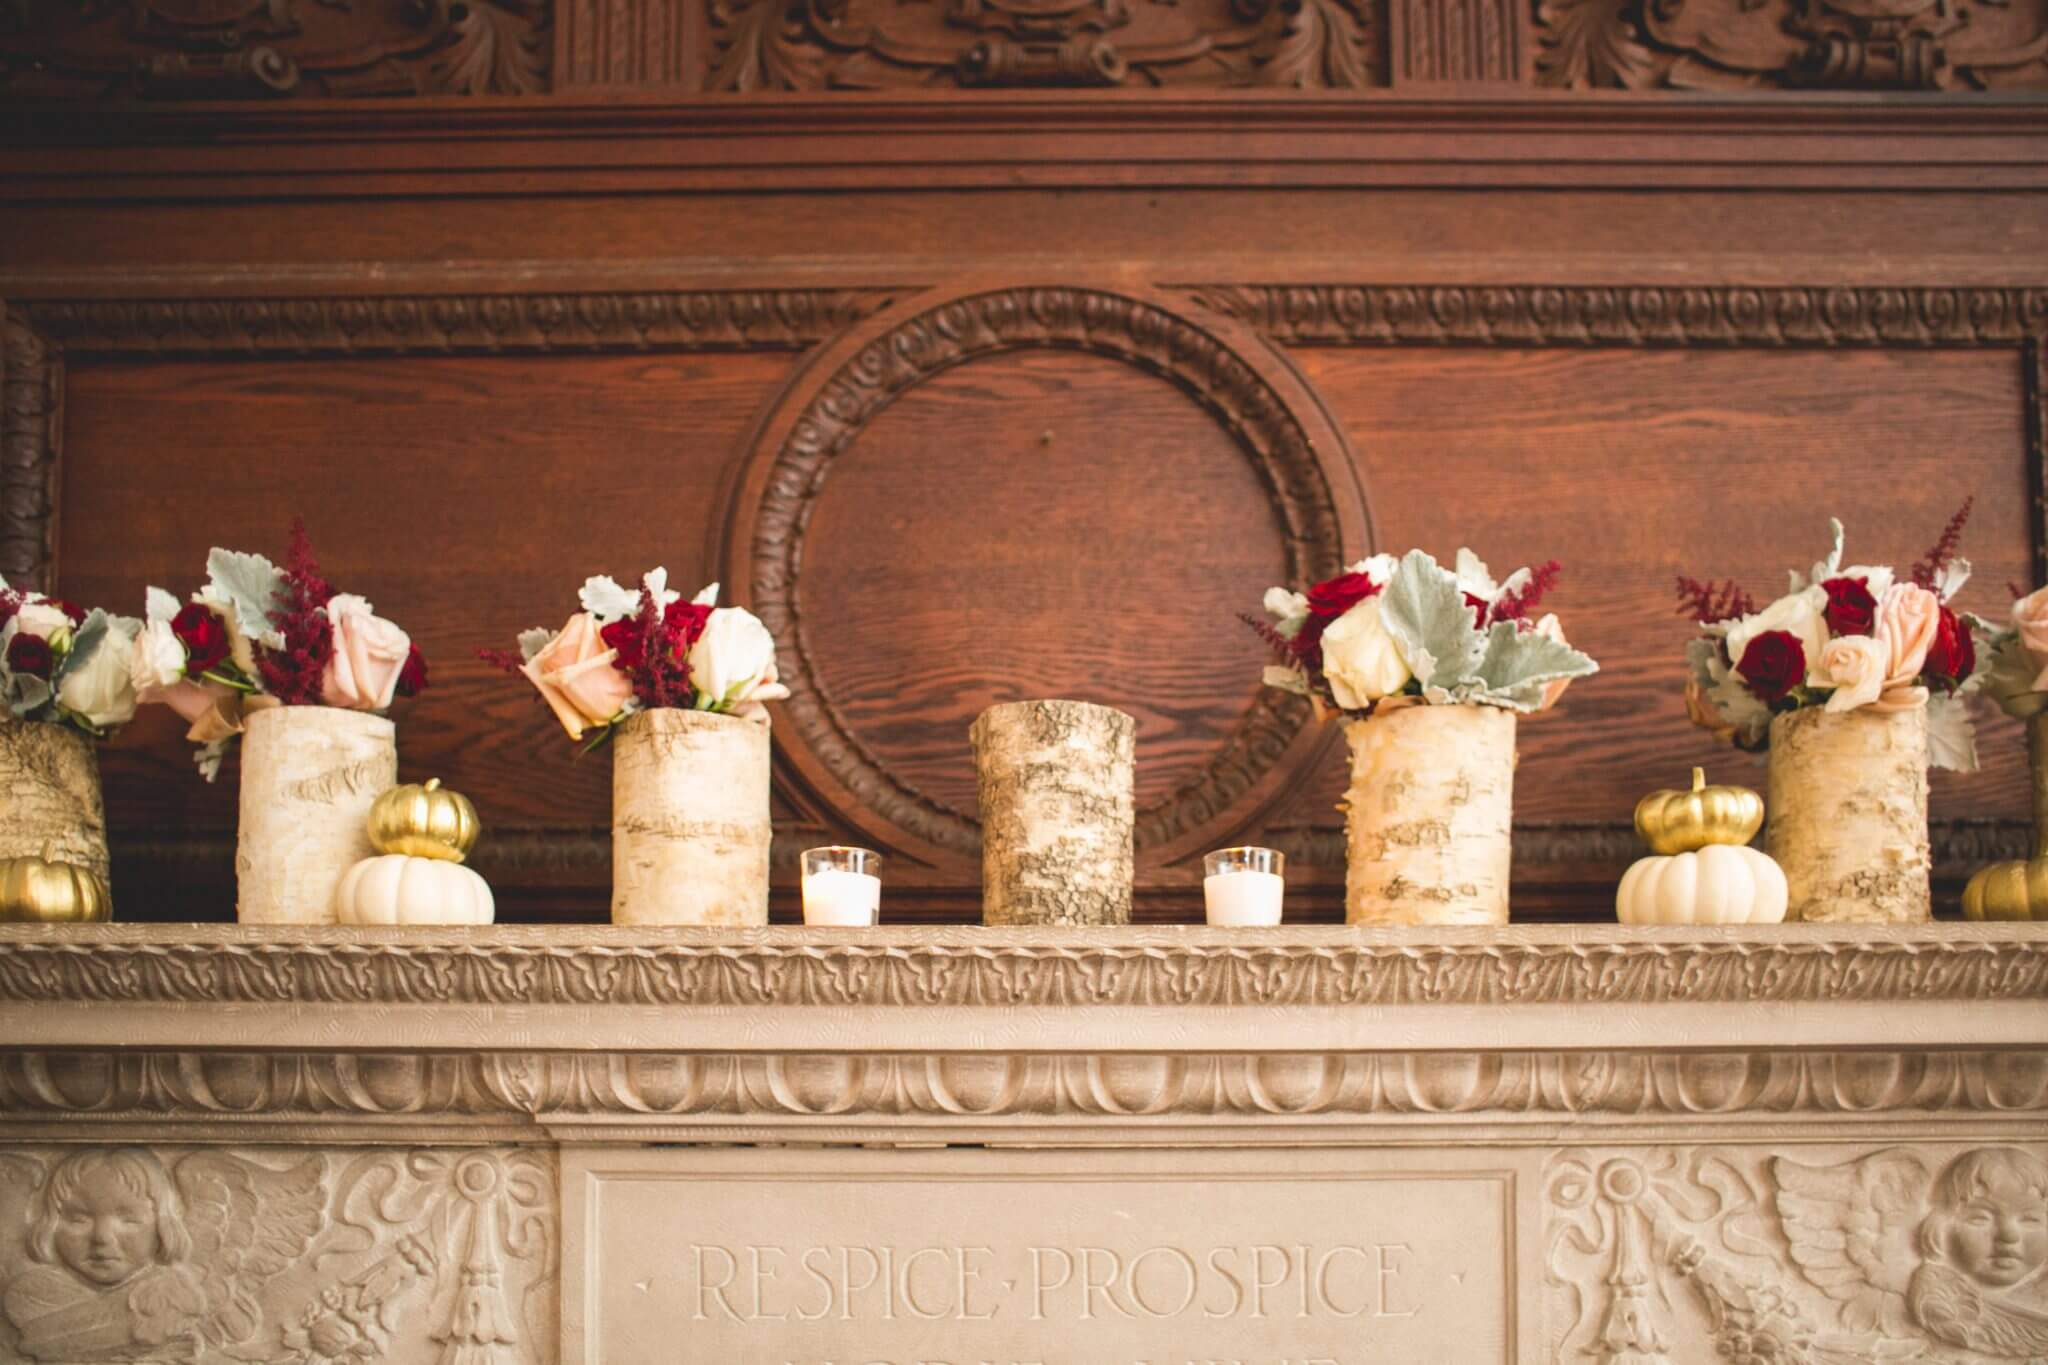 Historic mansion wedding mantle décor with birch tree floral displays at Willowdale Estate in Topsfield, MA www.willowdaleestate.com